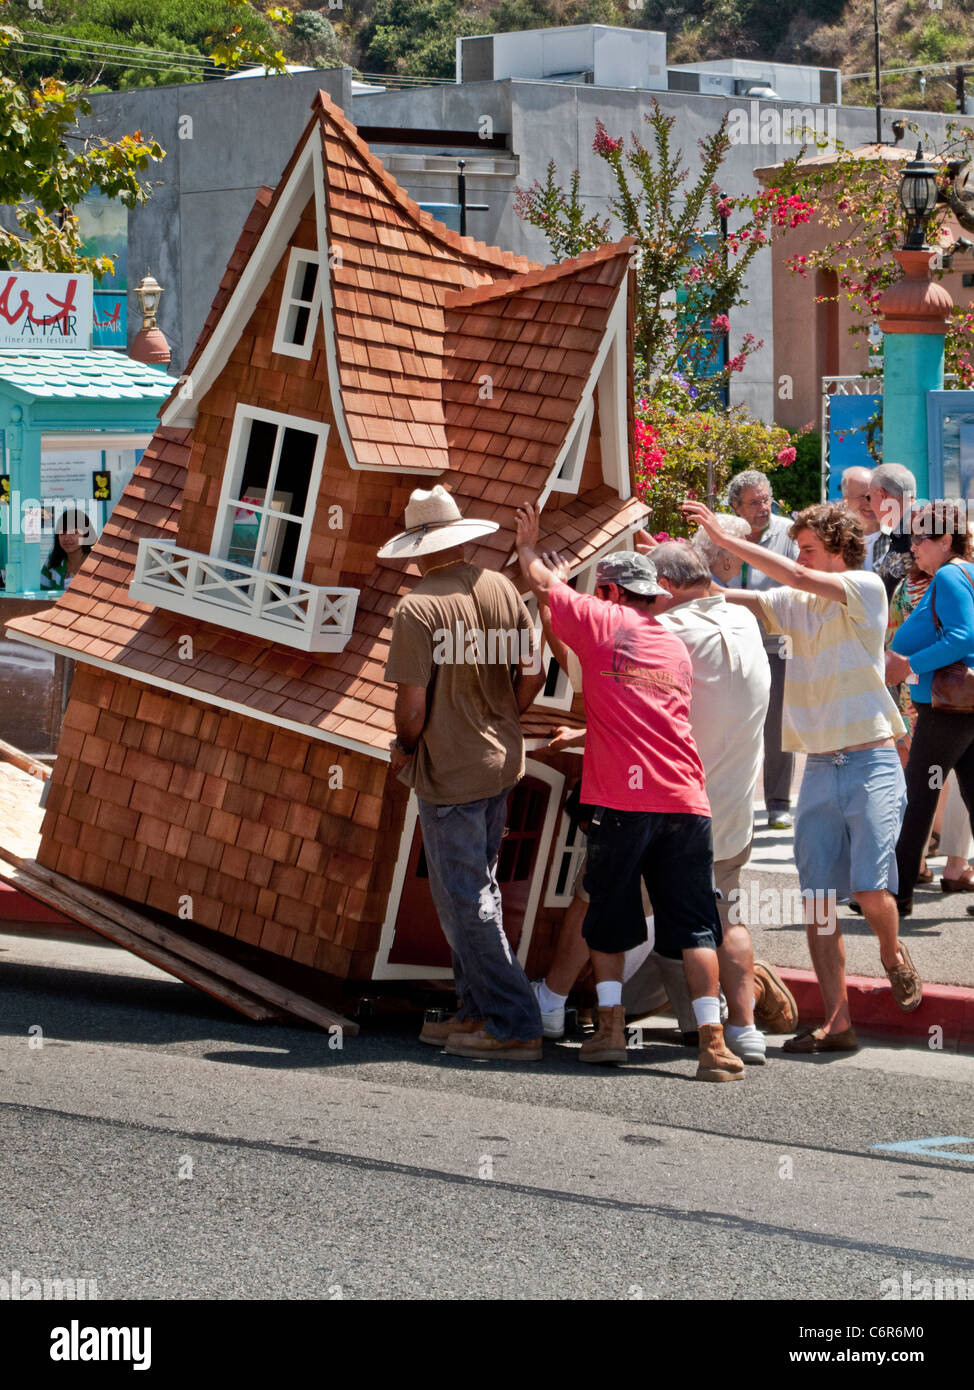 Workmen unload a fanciful doghouse from a truck outside an art show in Laguna Beach, CA. - Stock Image